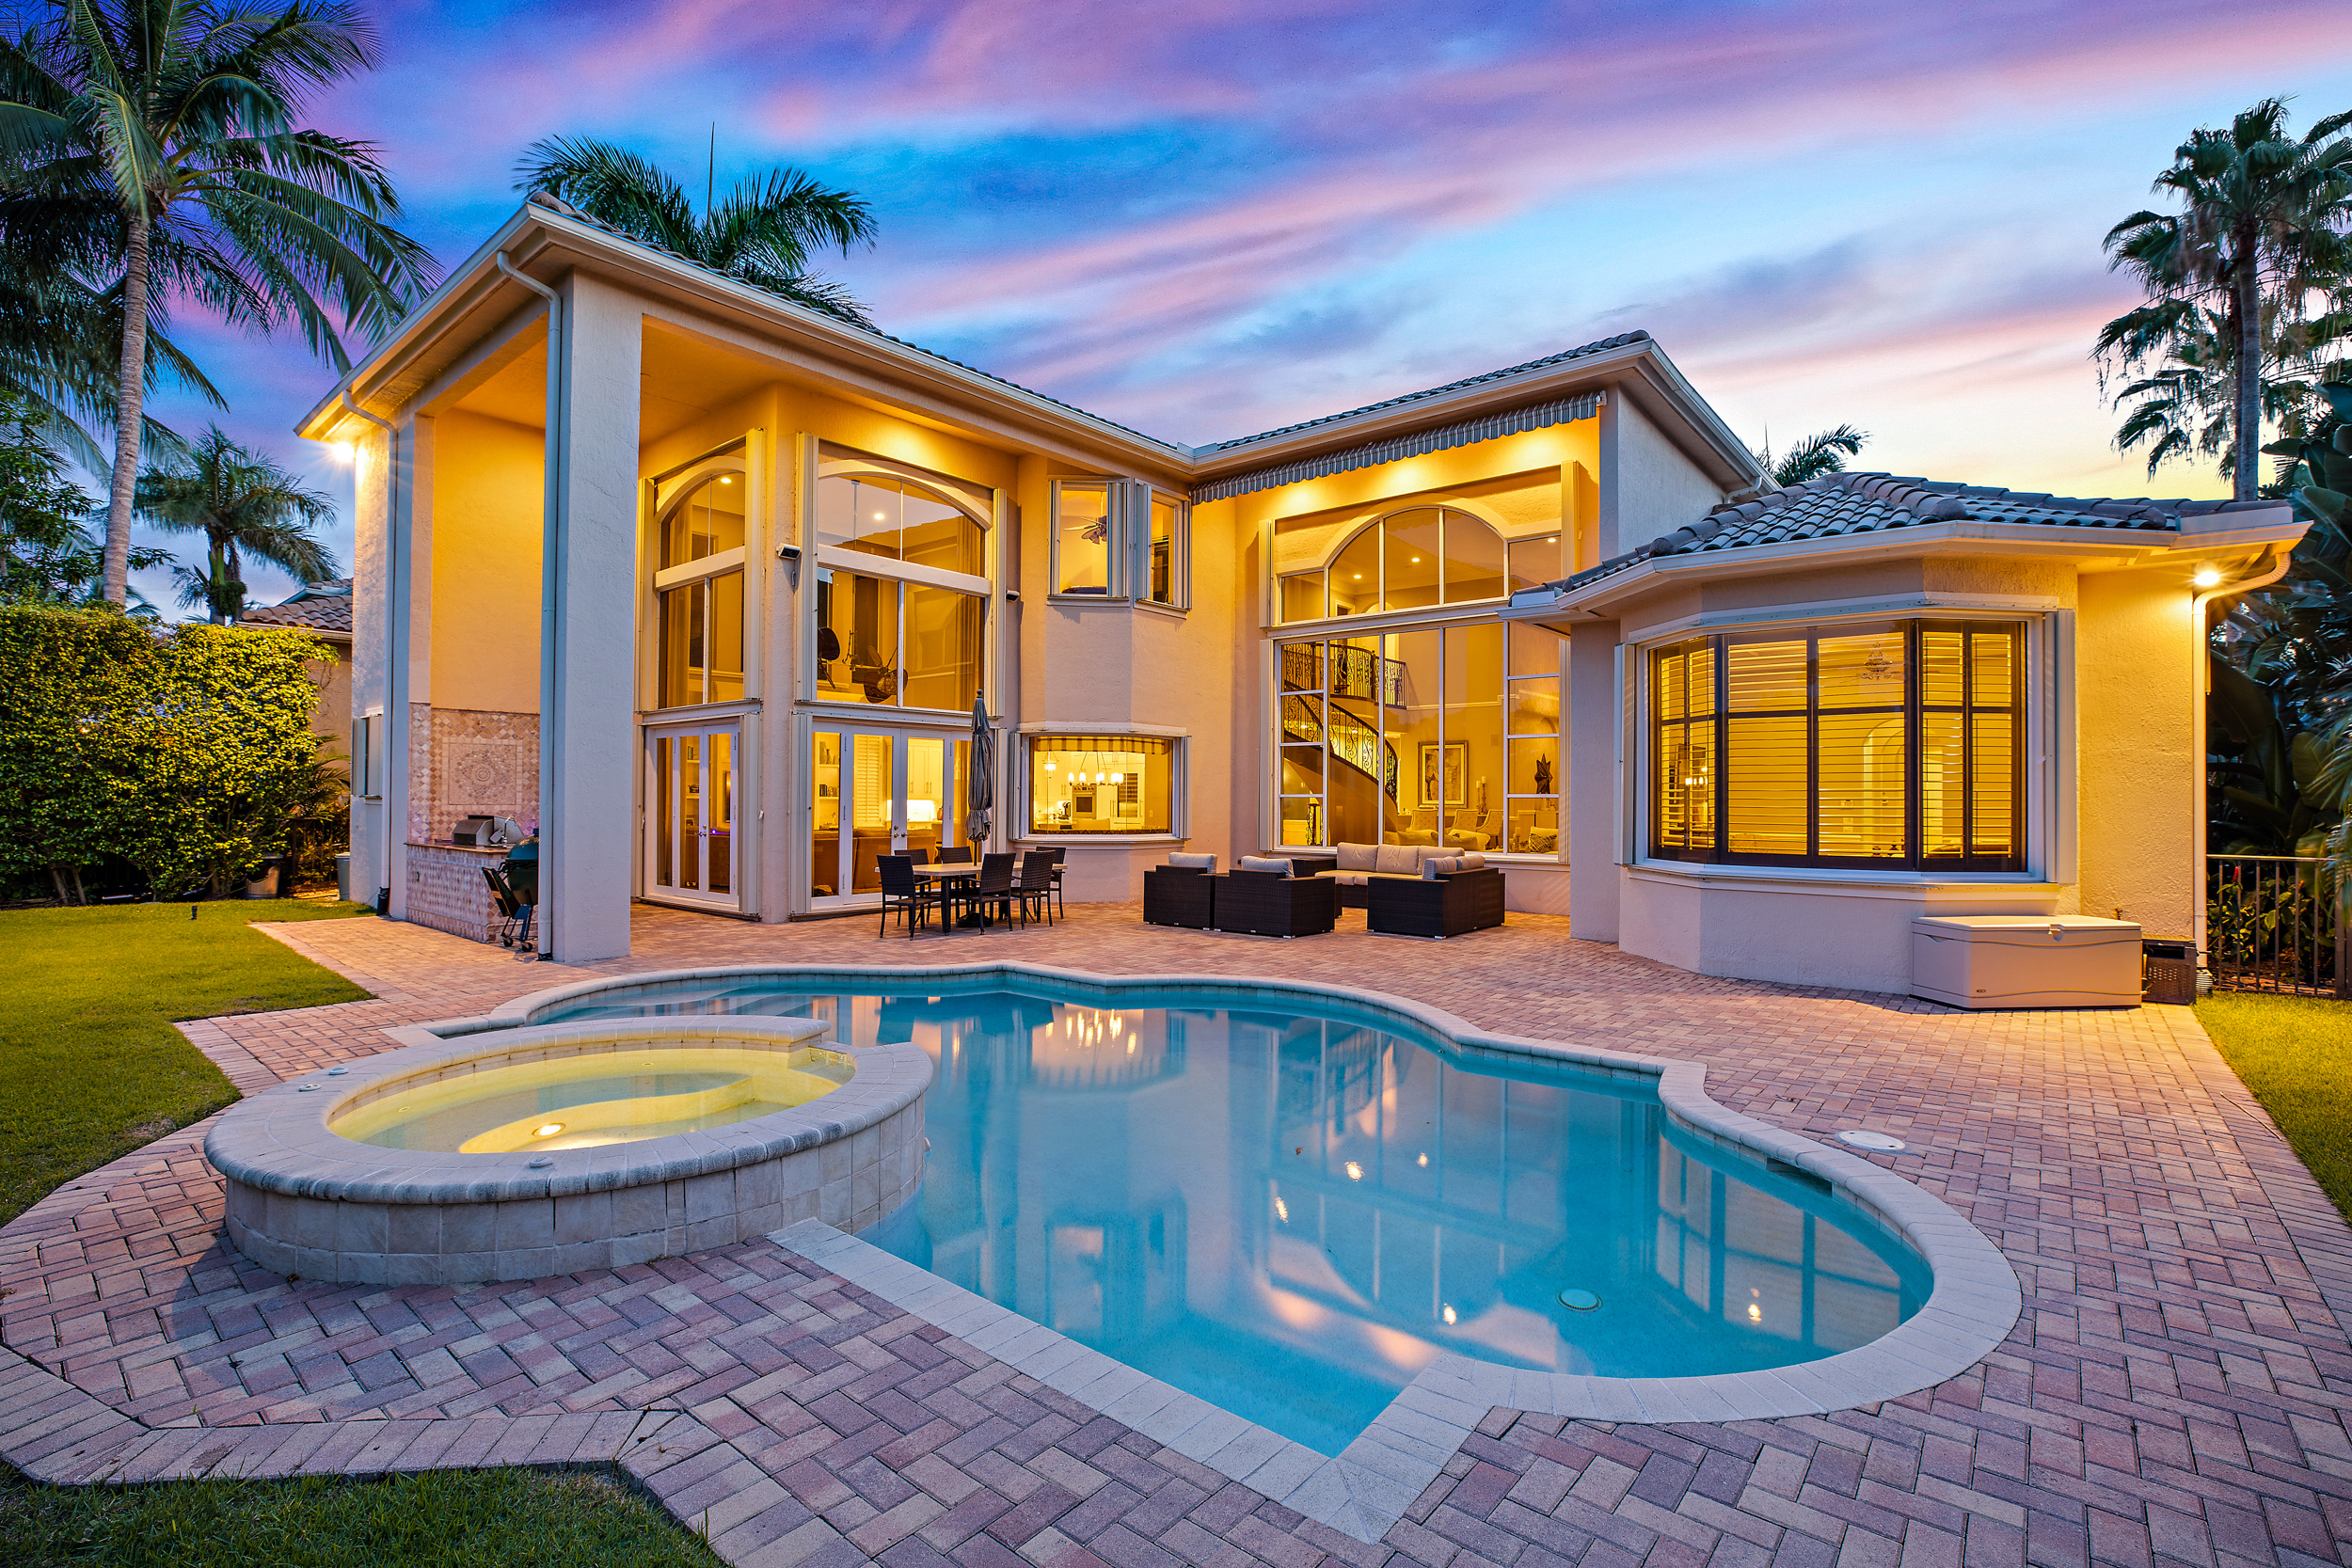 Home for Sale in Palm Beach gardens florida